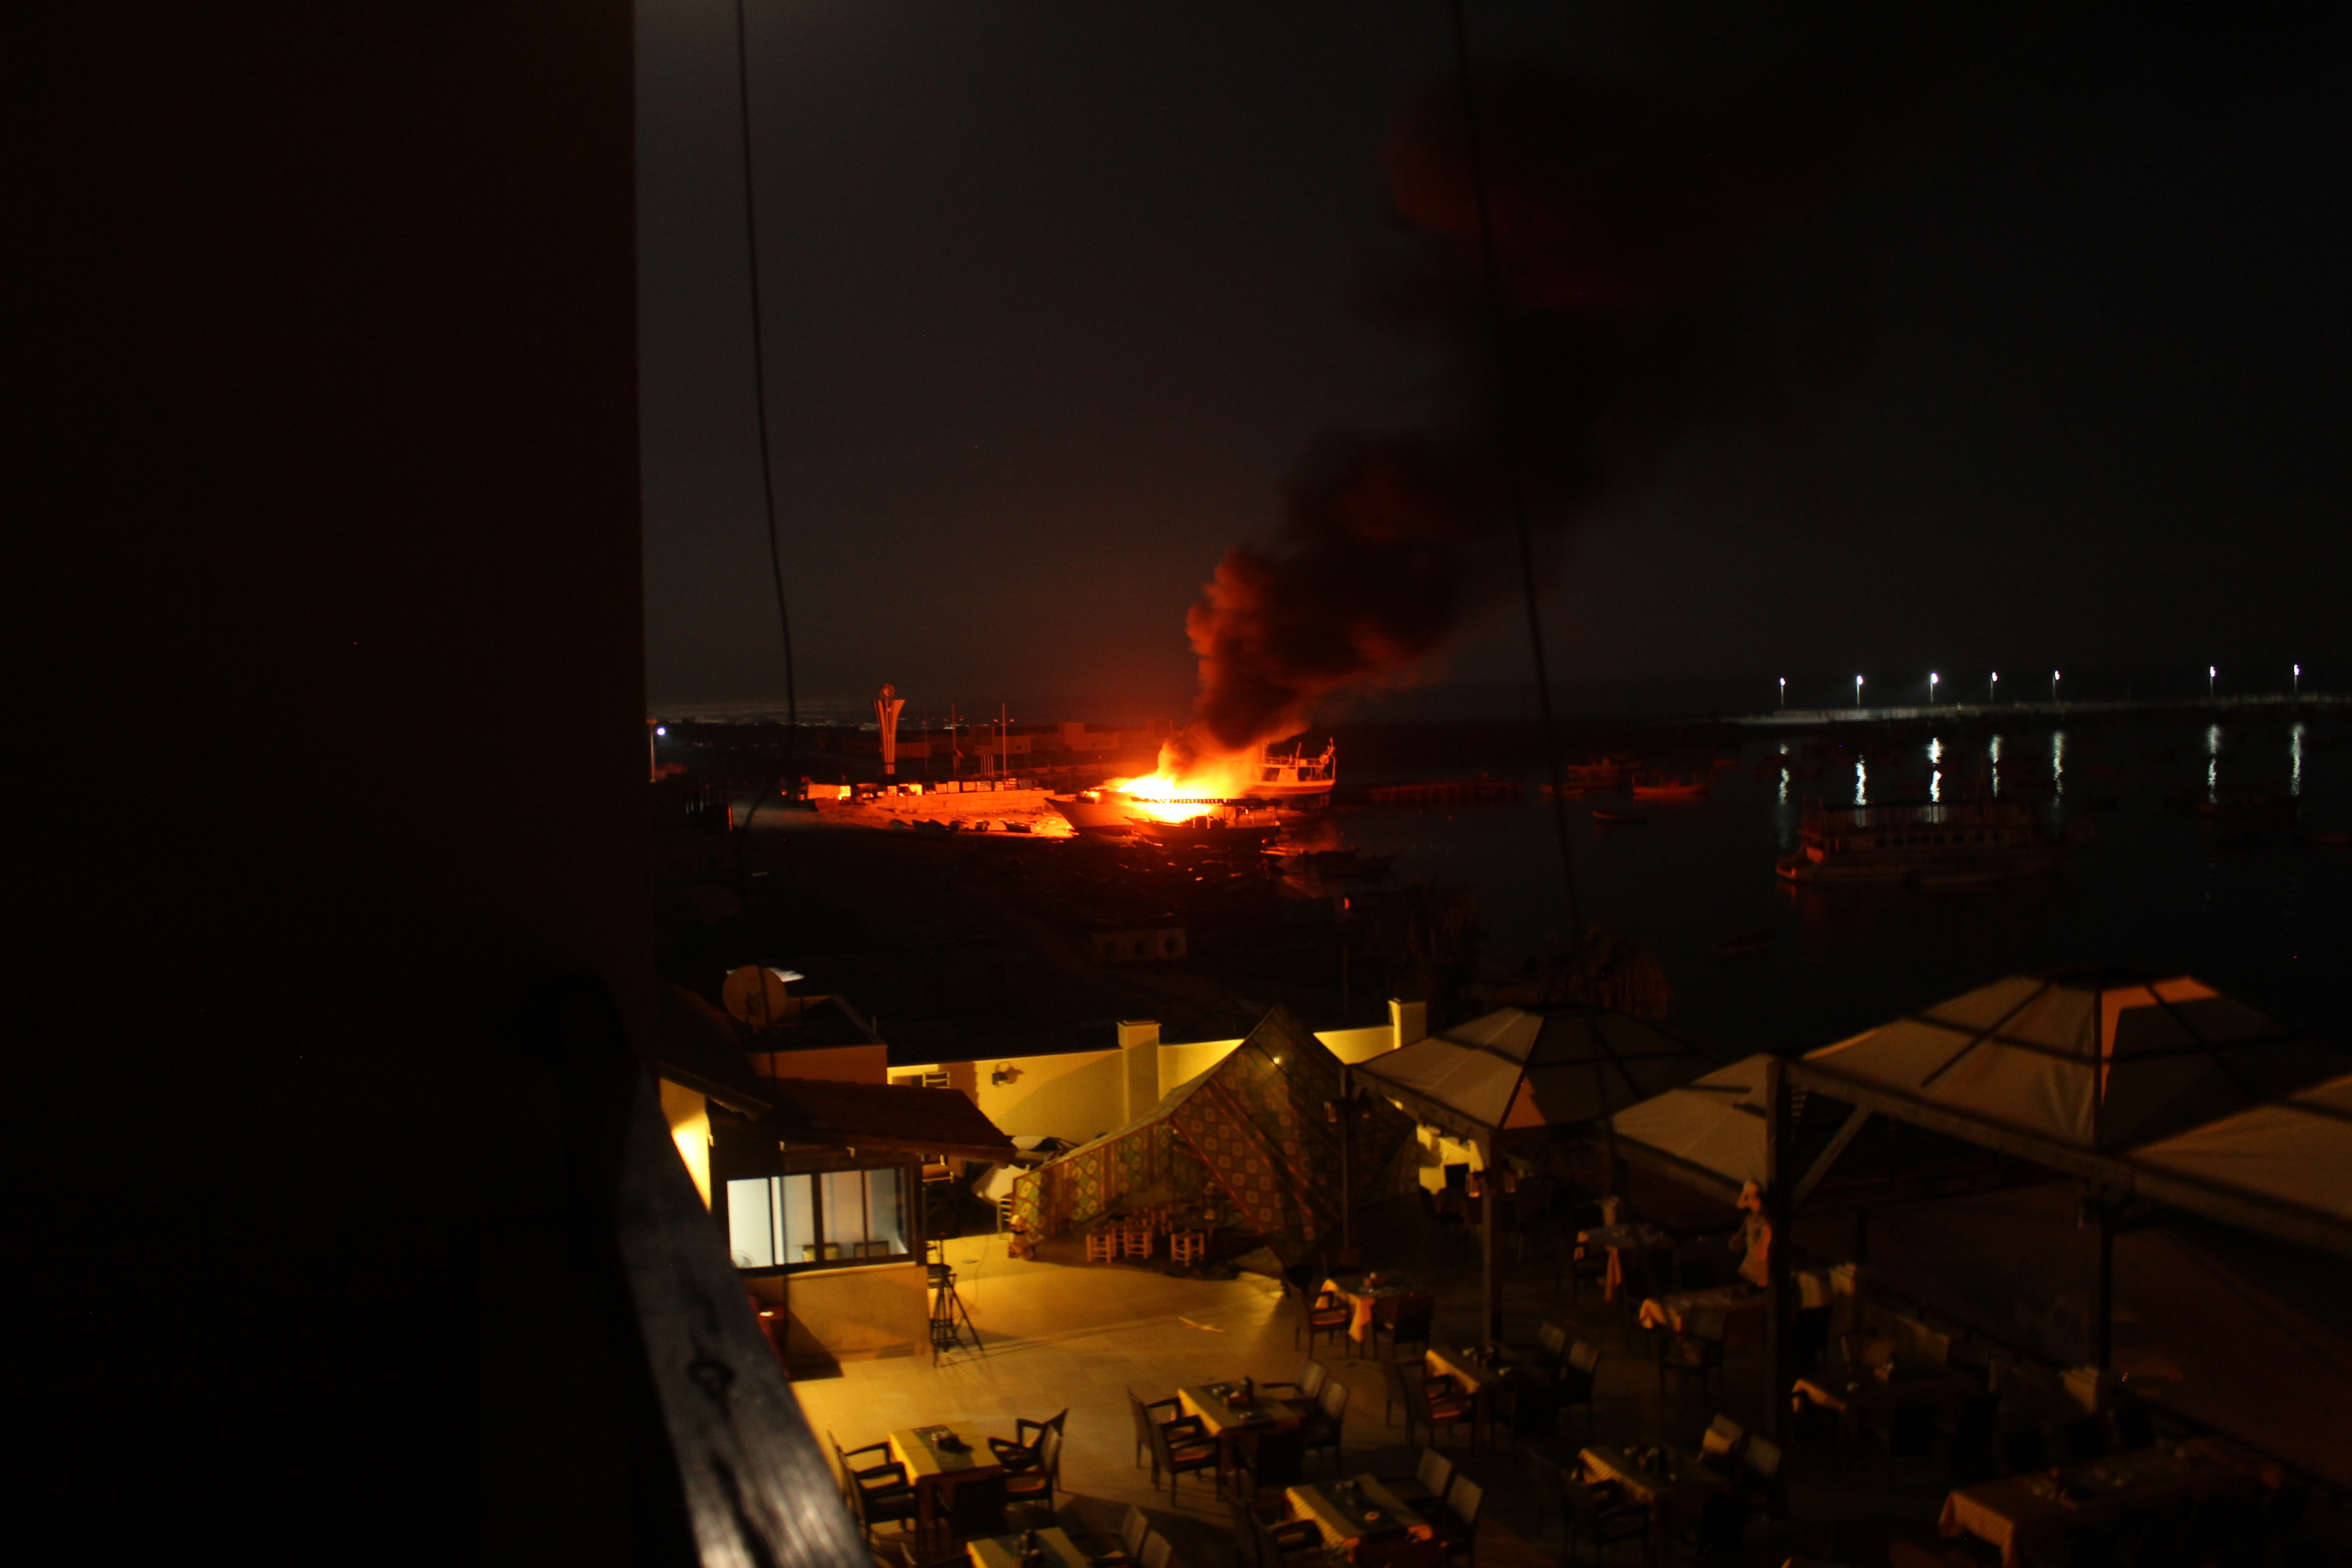 Bombardement sur le port de Gaza, 10 juillet 2014 www.merblanche.com all rights reserved